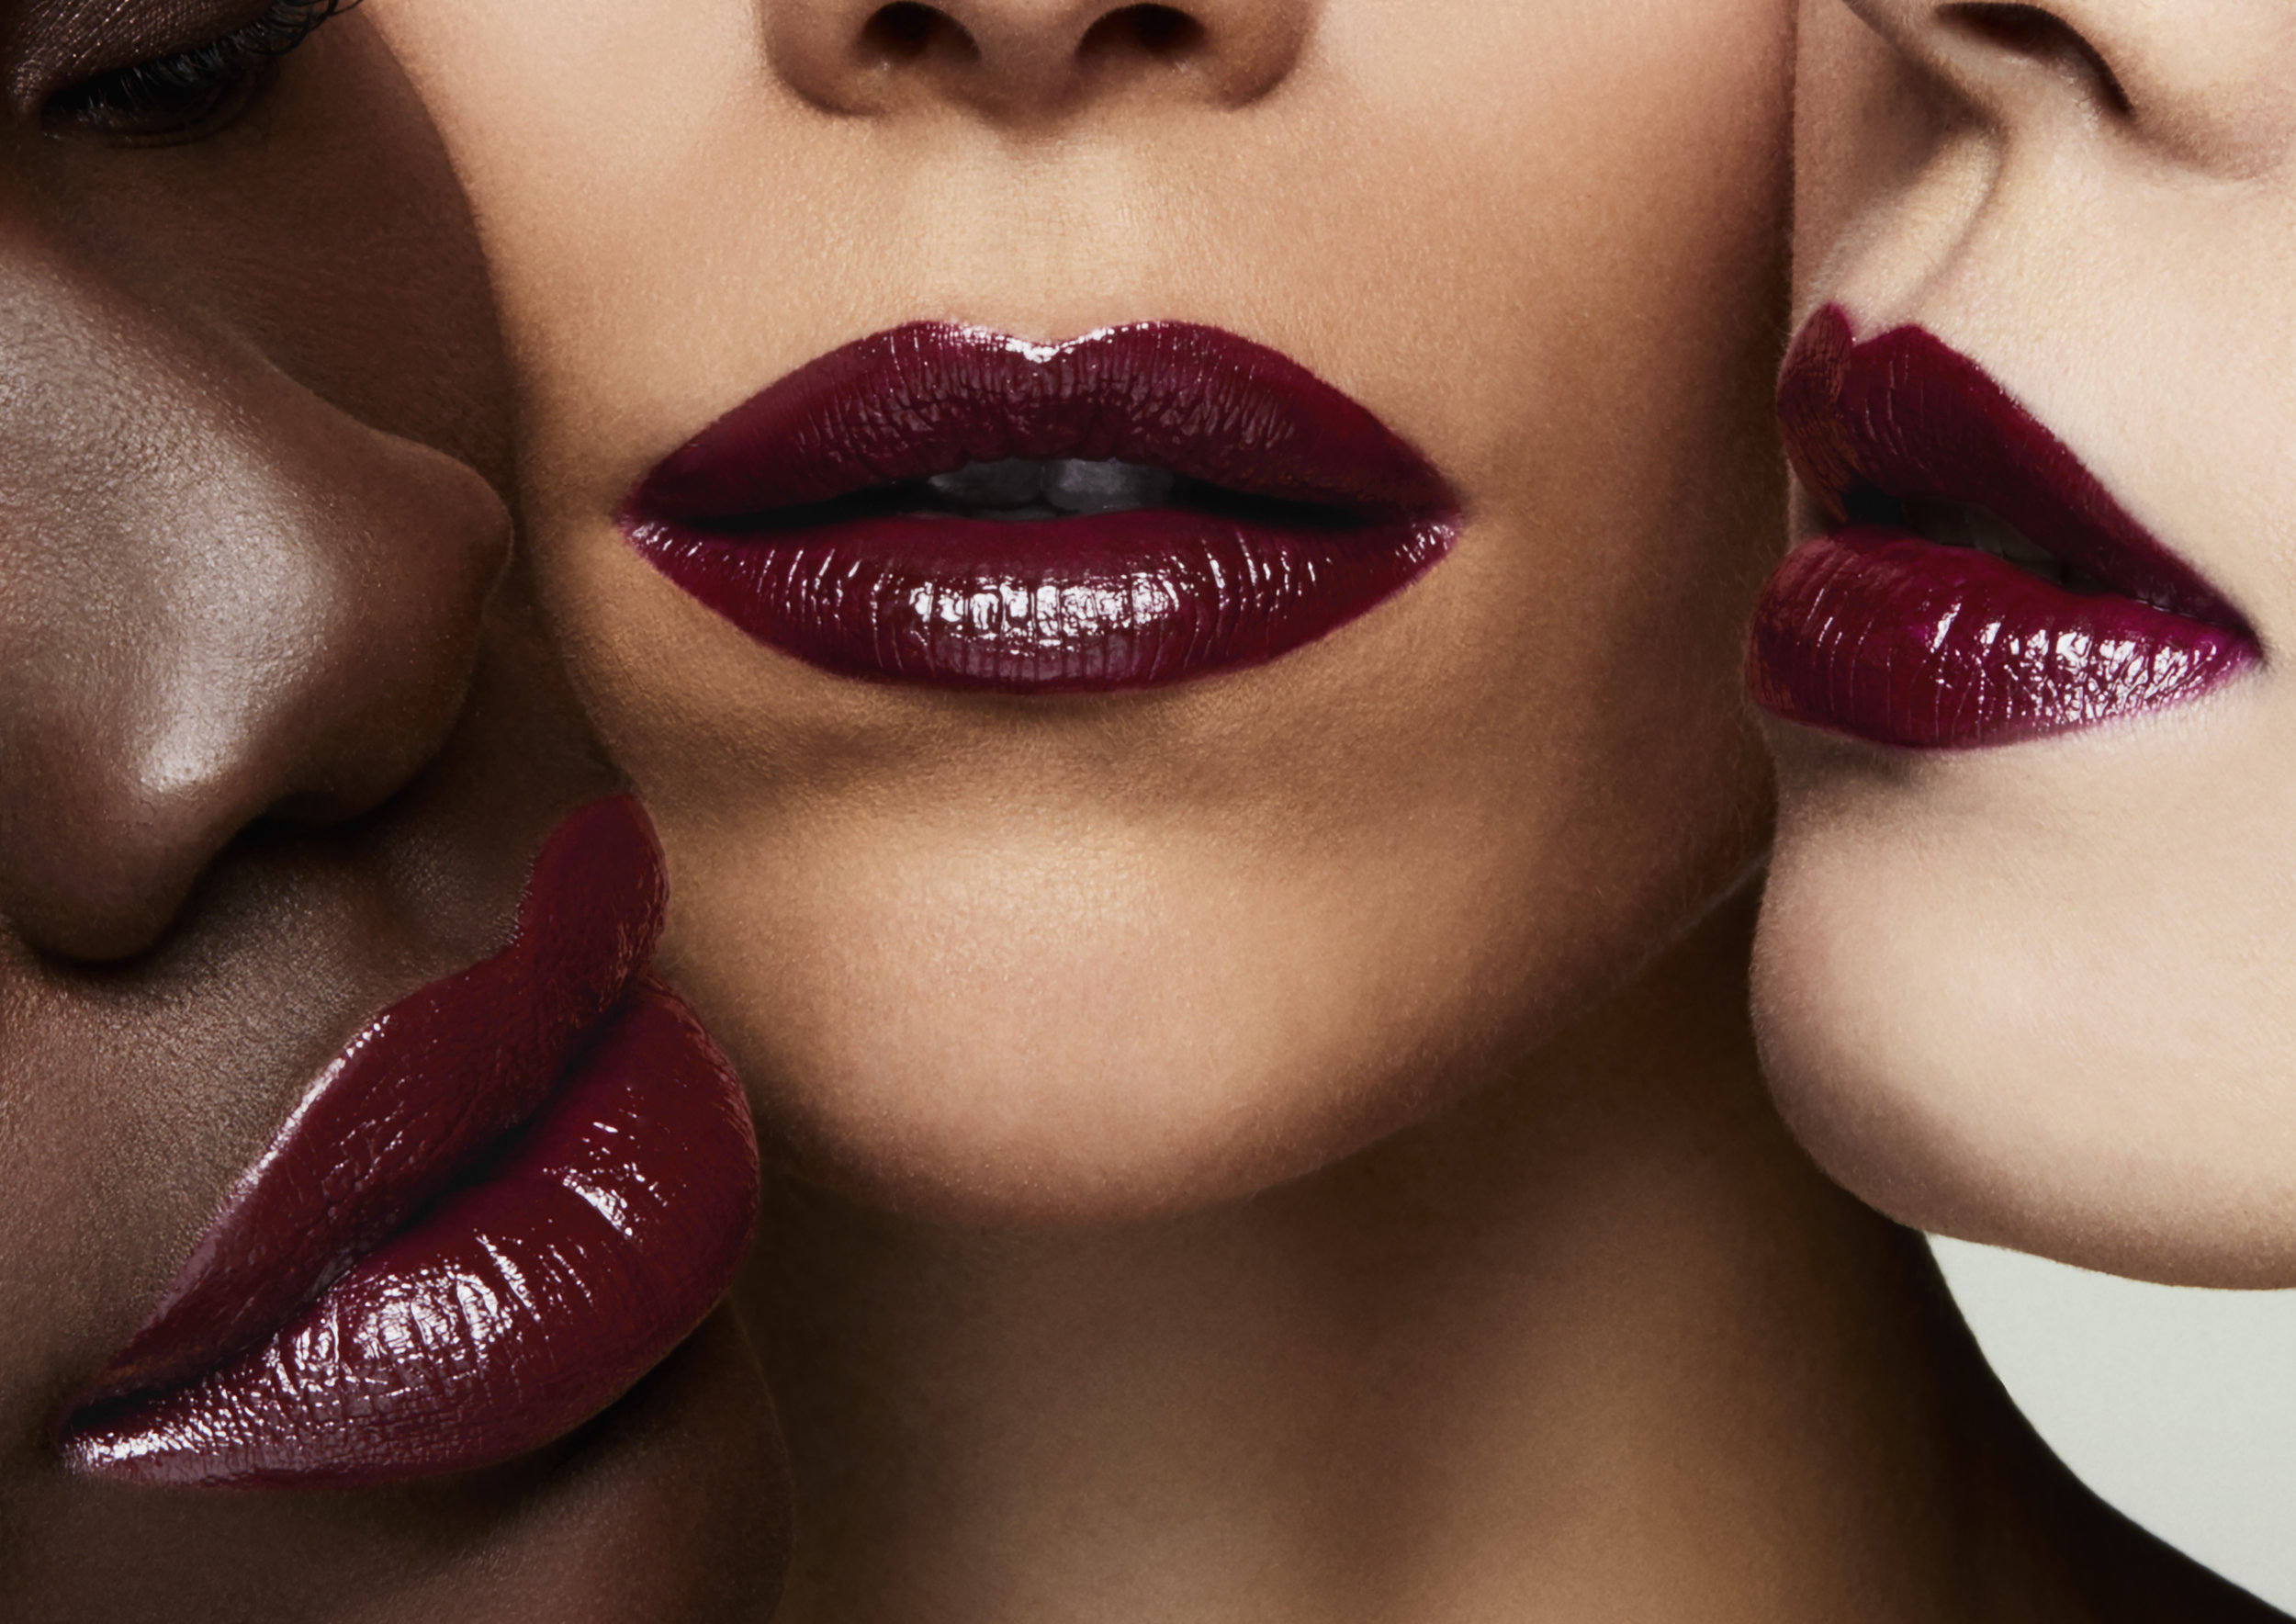 BeautyPhotography_TomFordBeauty_LipstickEditorial_By_BriJohnson_0004.jpg